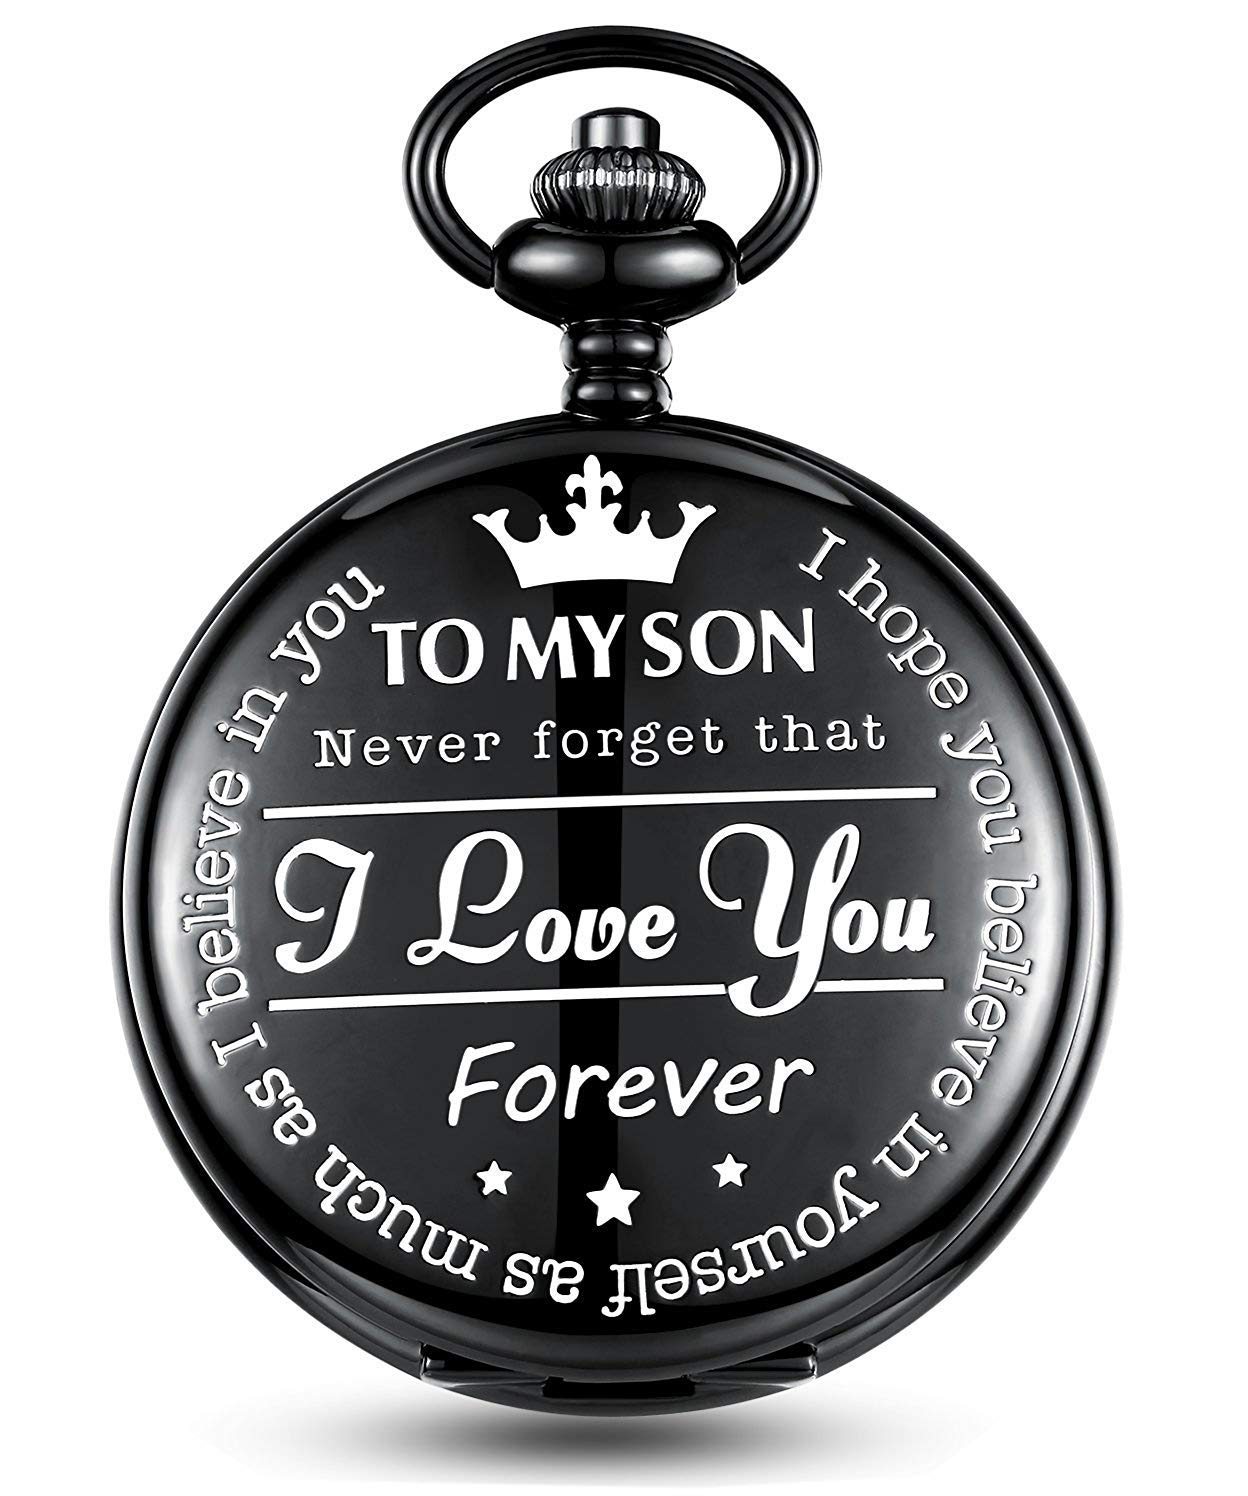 Mens Pocket Watch with Chain, Classic Vintage Quartz Roman Numerals Personalized Pattern Pocket Watches Retro Gift Black